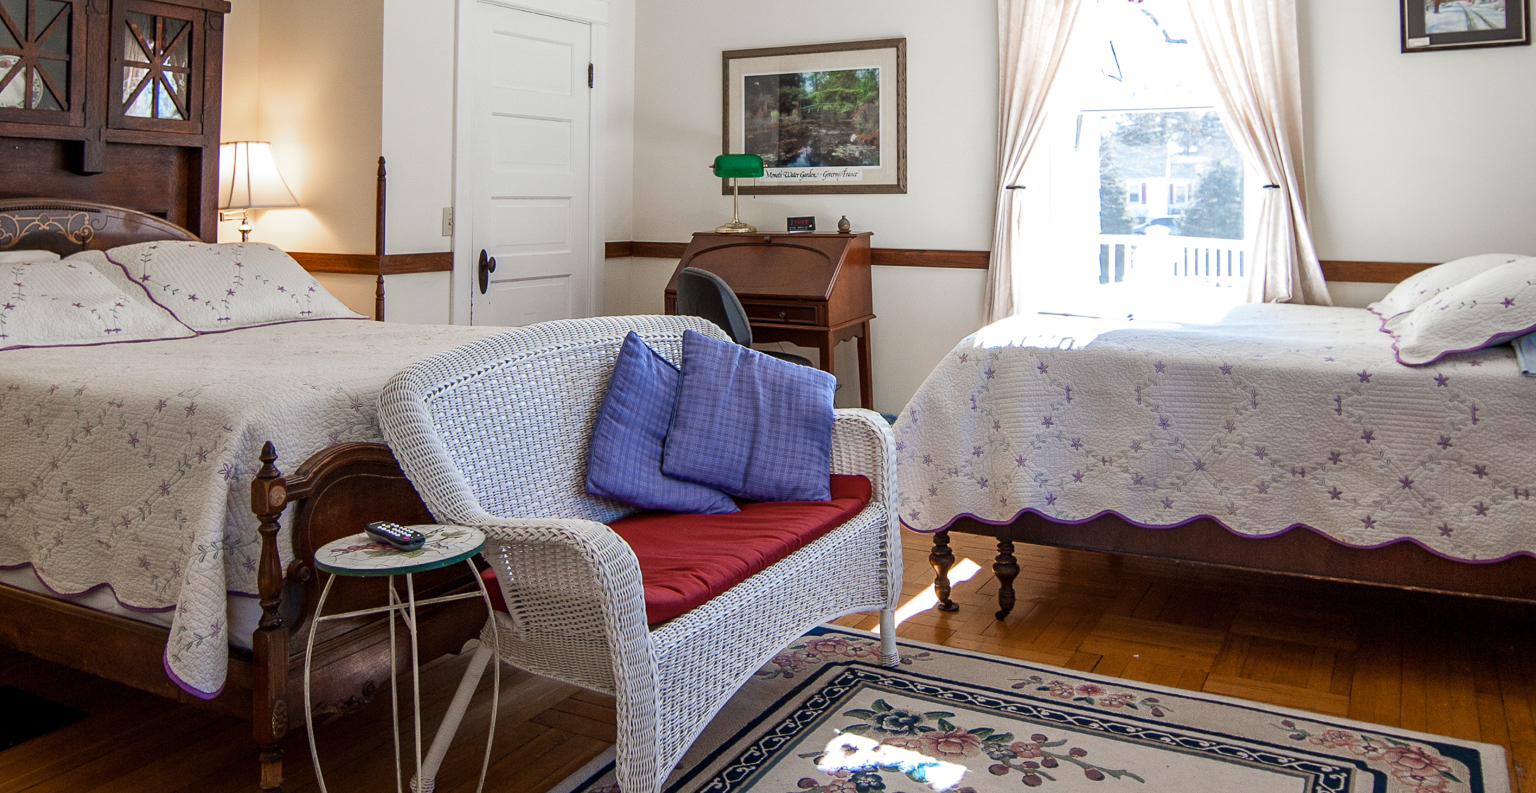 Two comfortable beds in the Bluestone Room in our B&B near JMU.